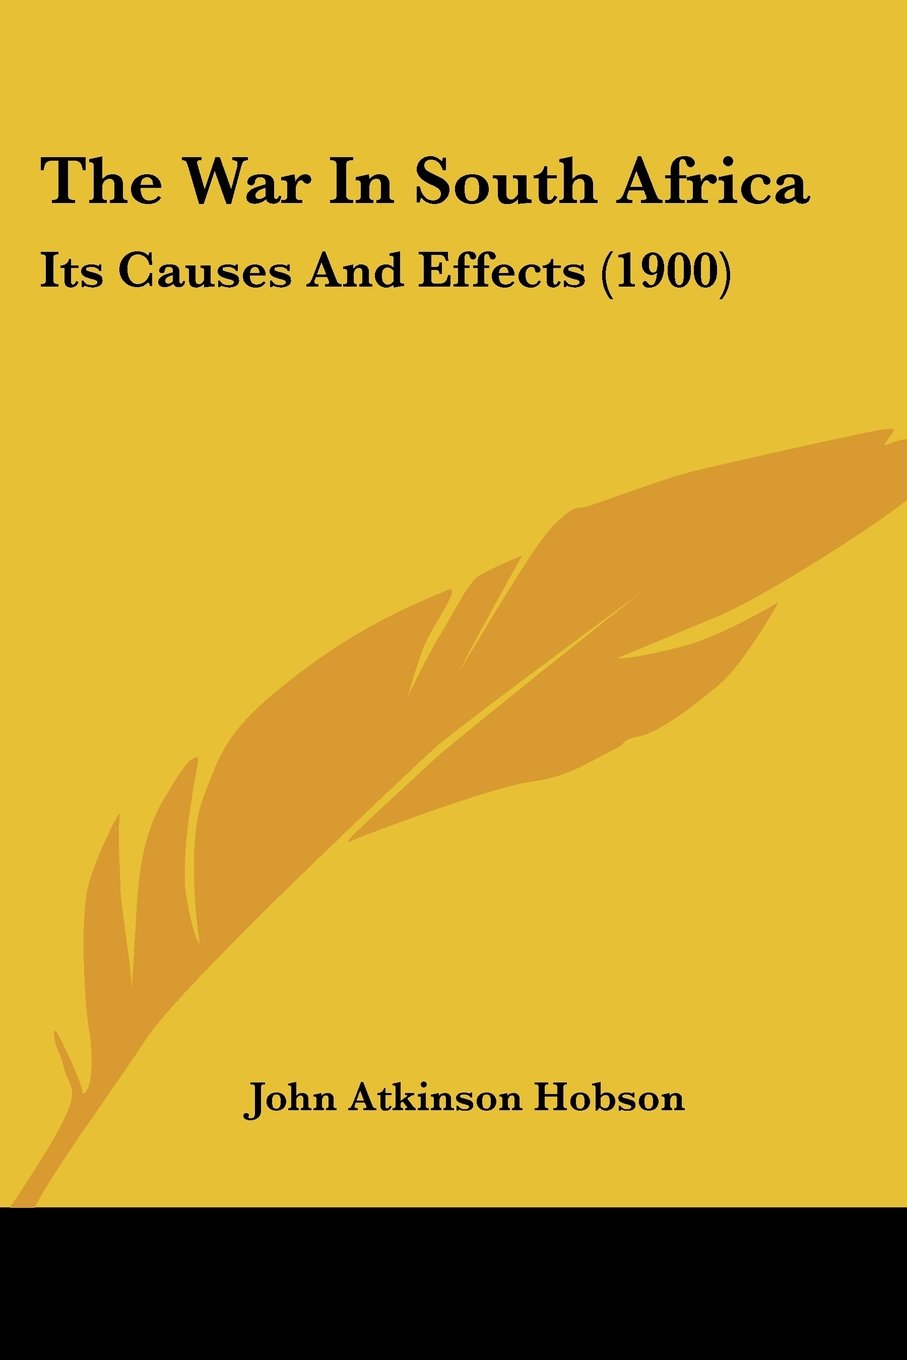 Download The War In South Africa: Its Causes And Effects (1900) ebook